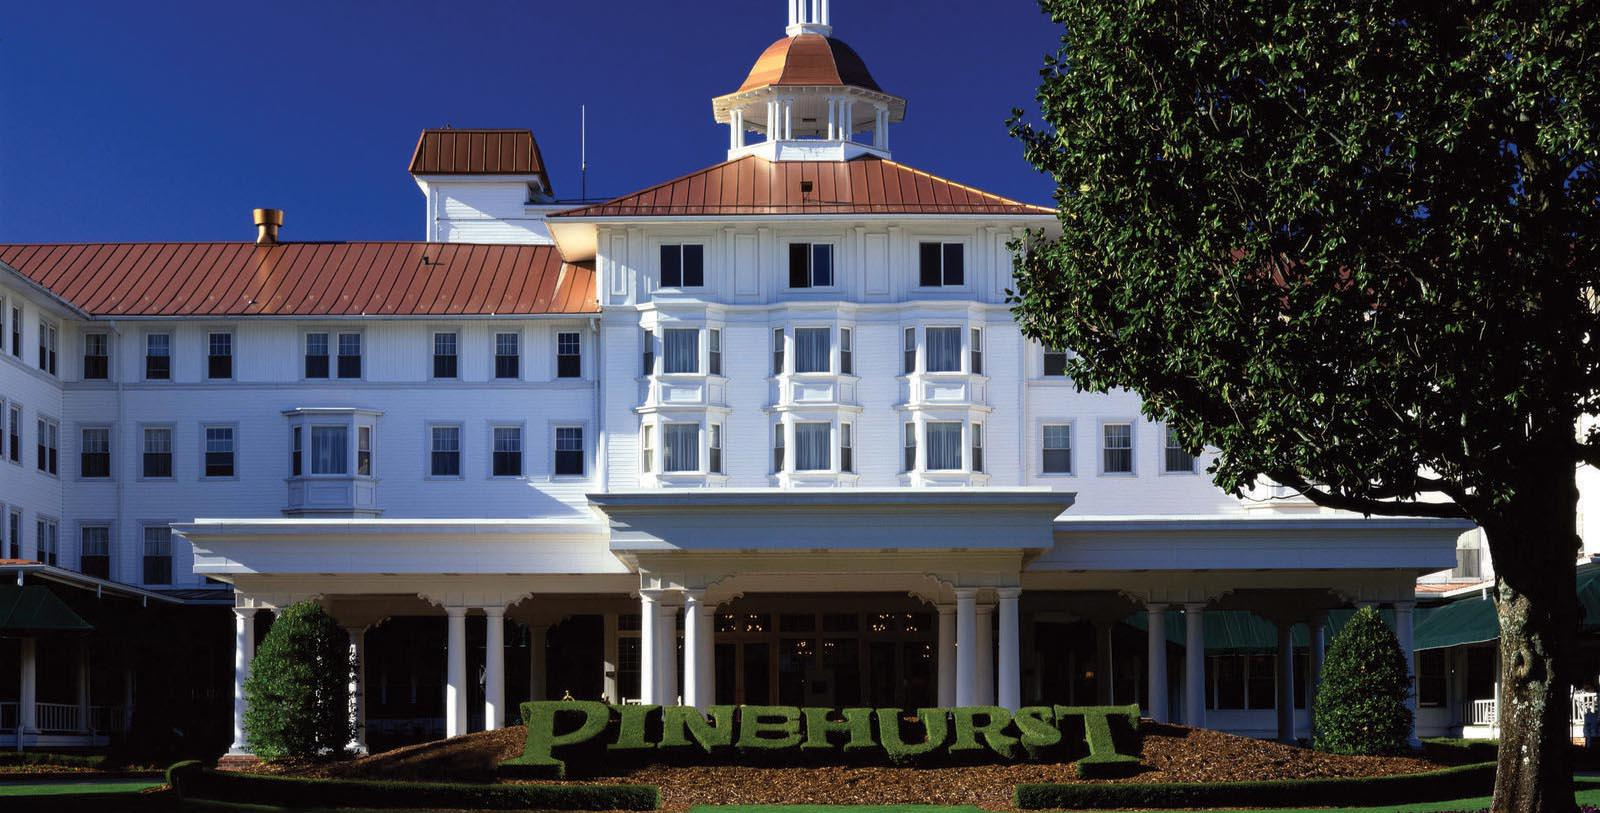 Image of Entrance to Pinehurst Resort, 1895, Member of Historic Hotels of America, in Village of Pinehurst, North Carolina, Overview